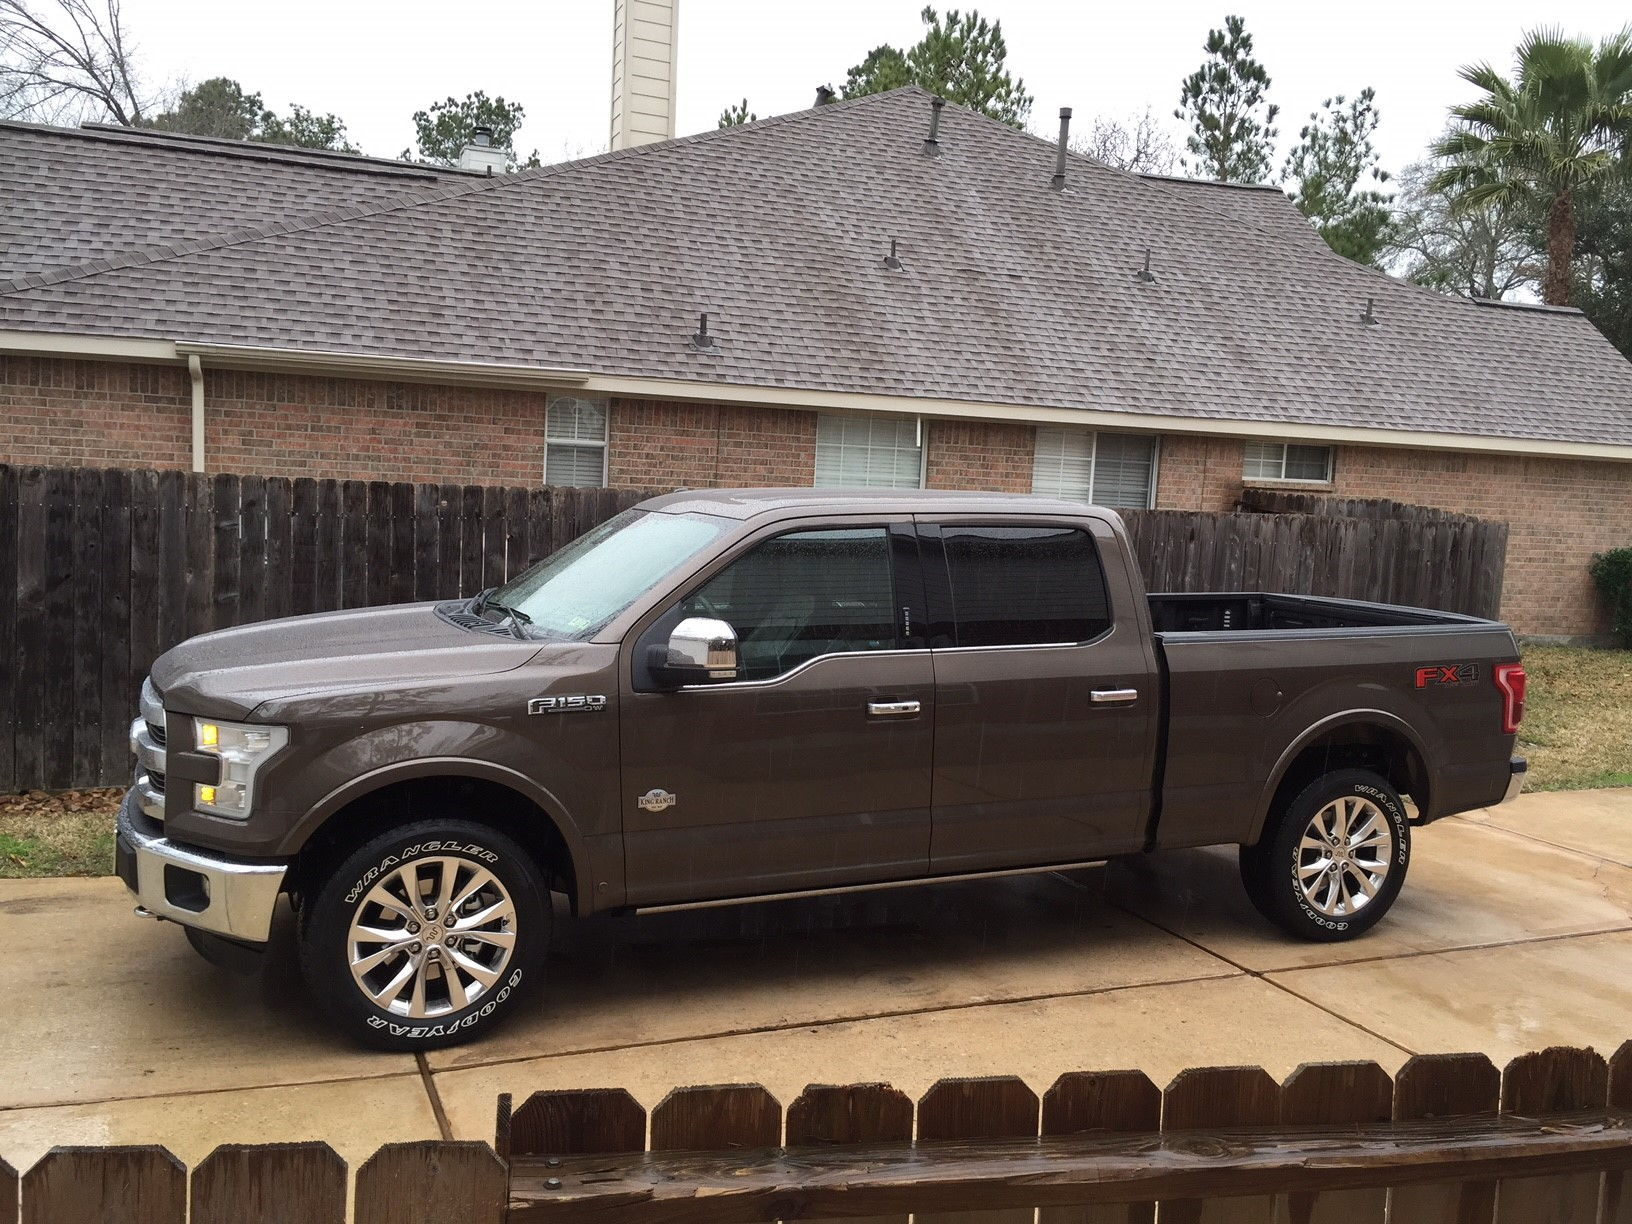 2014 ford f150 gas tank autos post. Black Bedroom Furniture Sets. Home Design Ideas